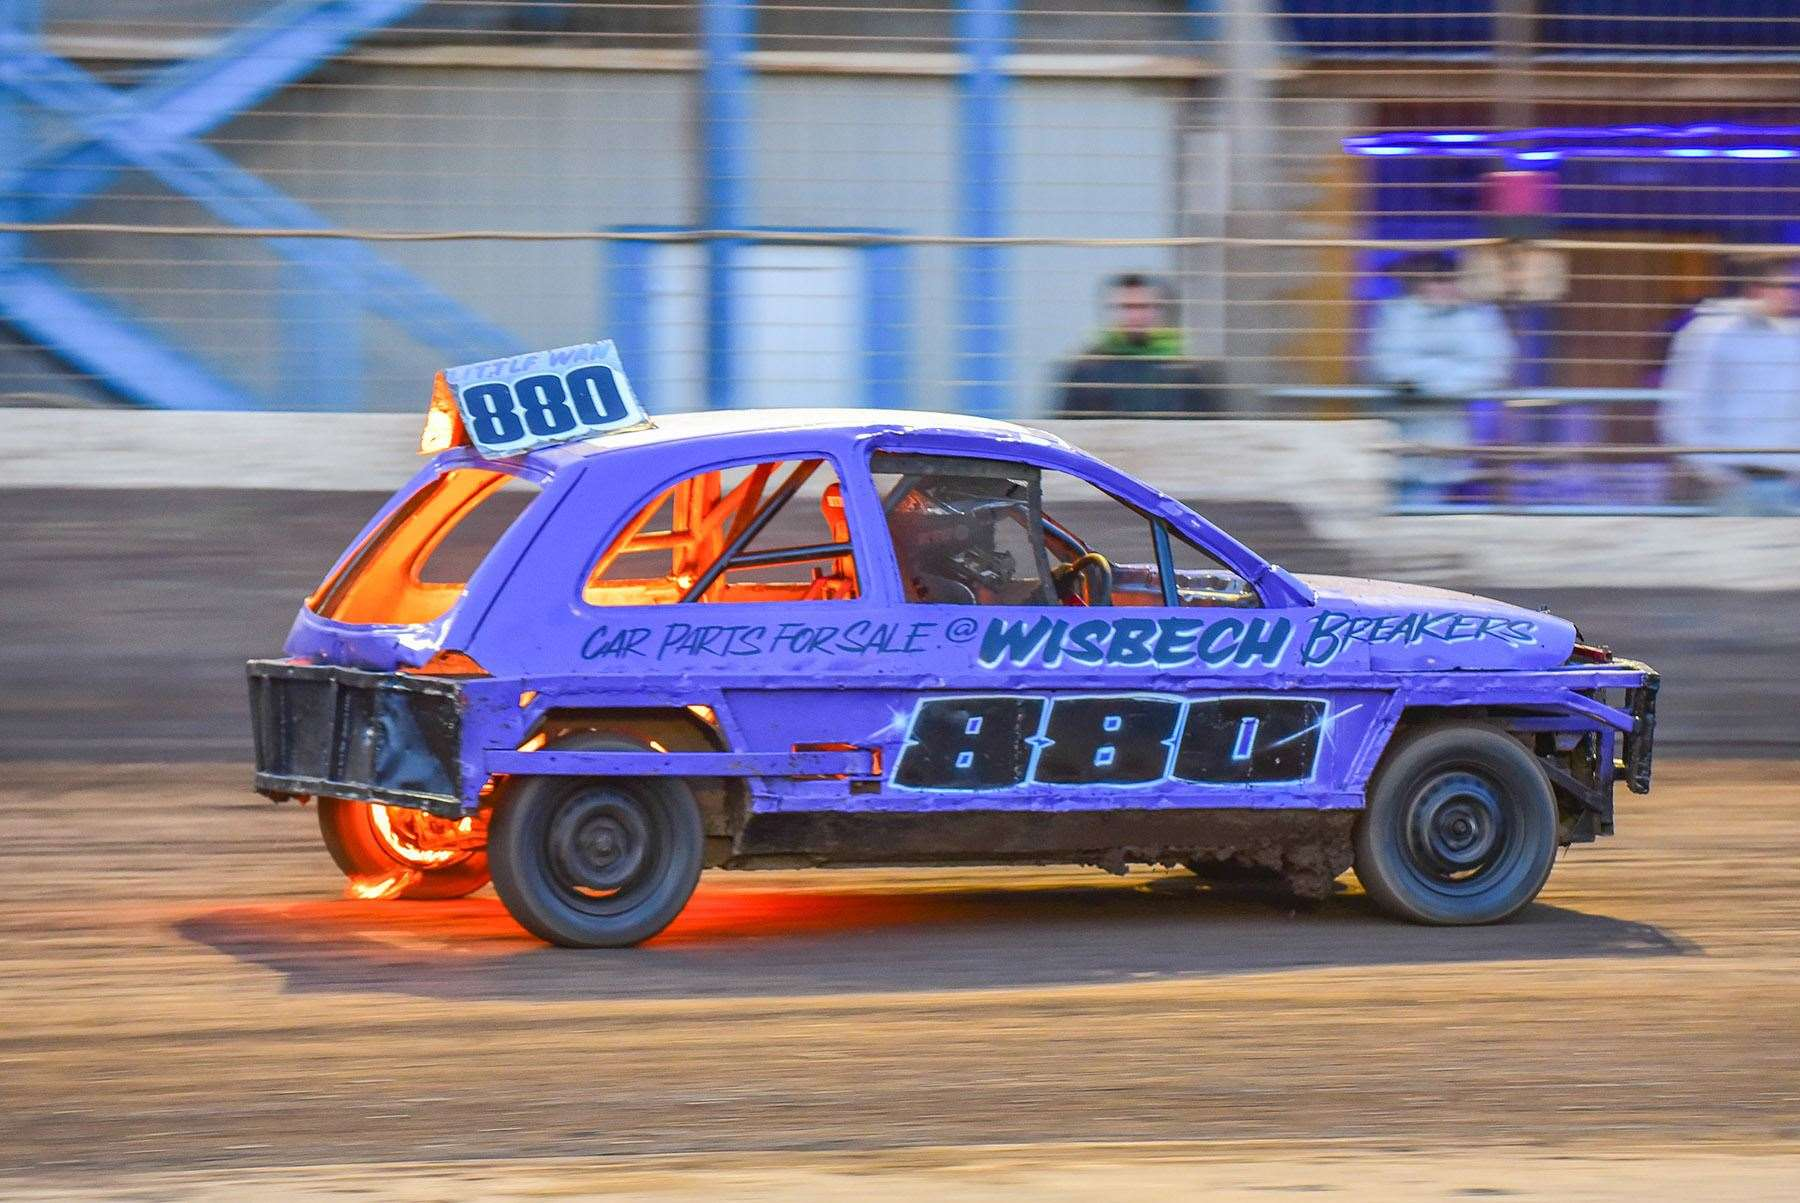 Wisbech 1300 Stock Car driver 880 anthony Kerr will want to avoid a repeat of scenes a fortnight ago where his petrol tank split which saw the car catch fire. (7683676)